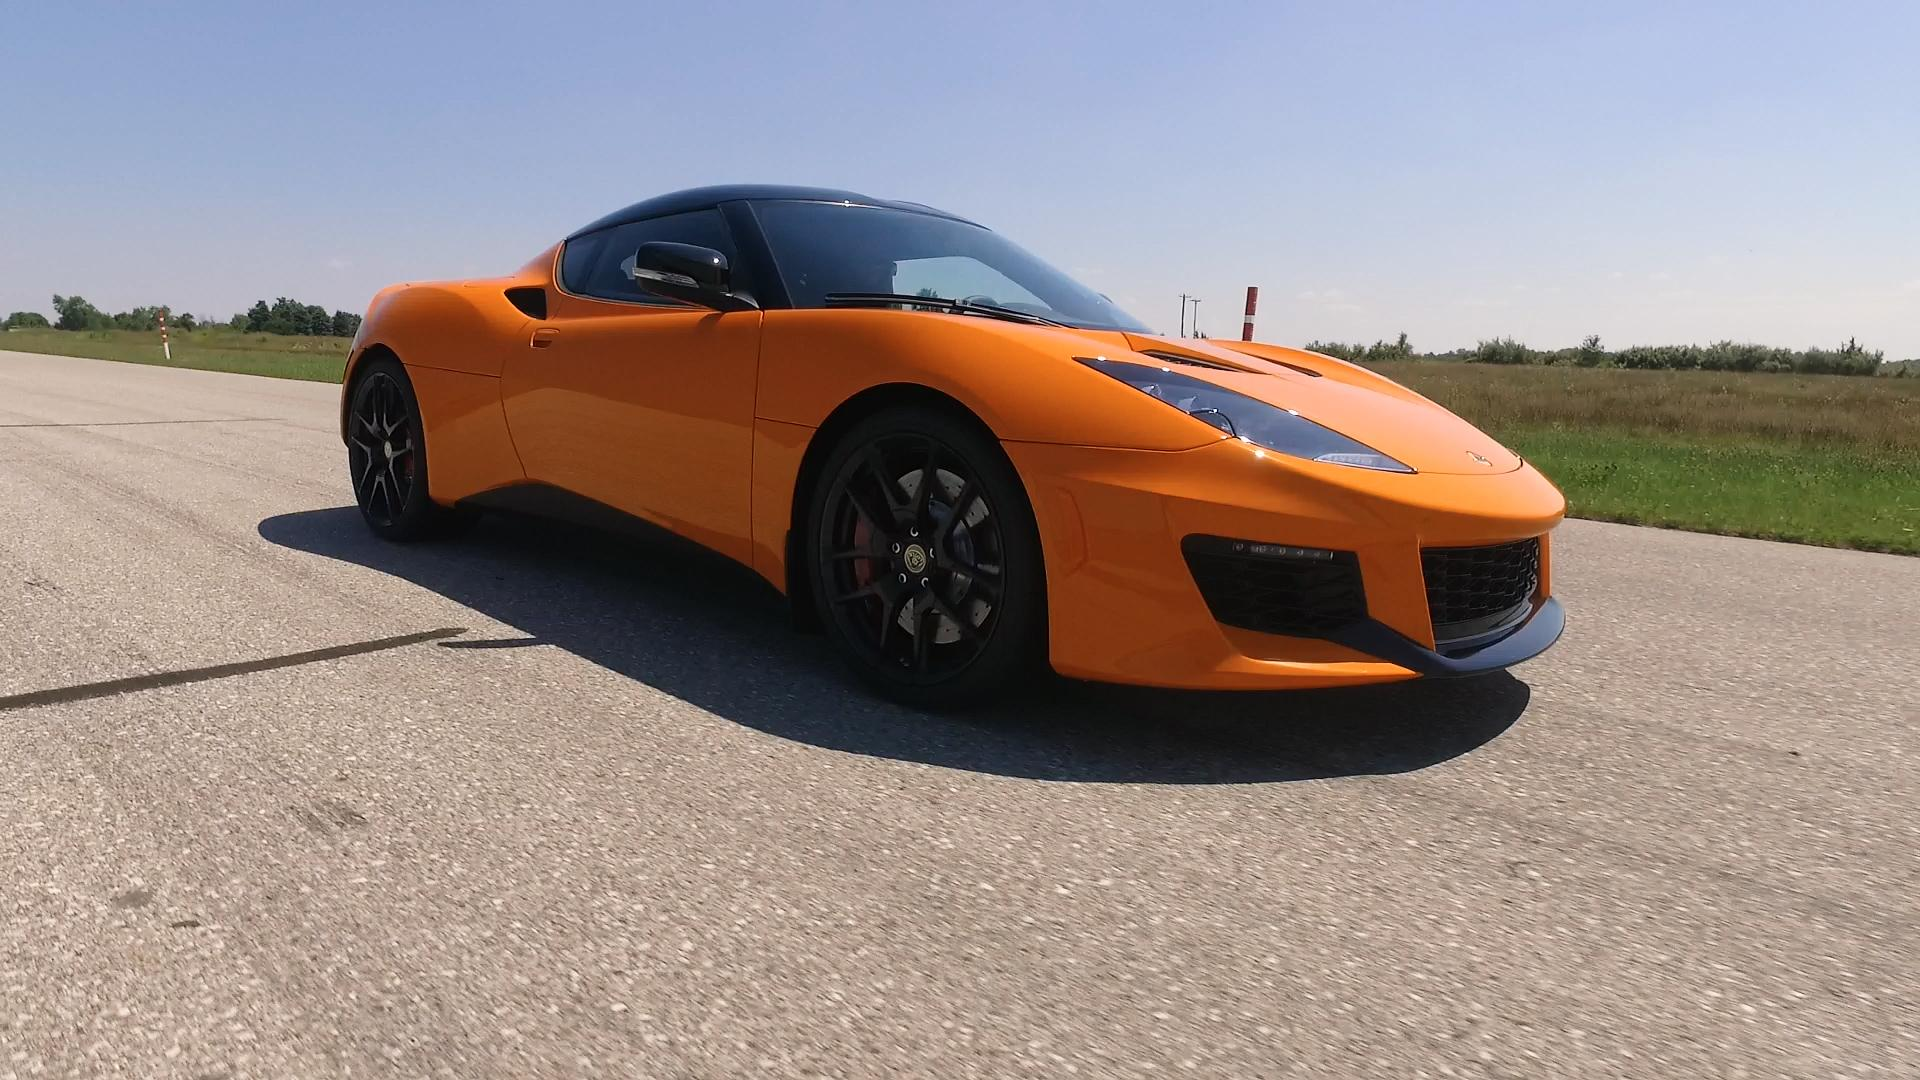 Lotus CEO Says Brand Will Have New Sports Cars SUV Autoblog - New sports cars